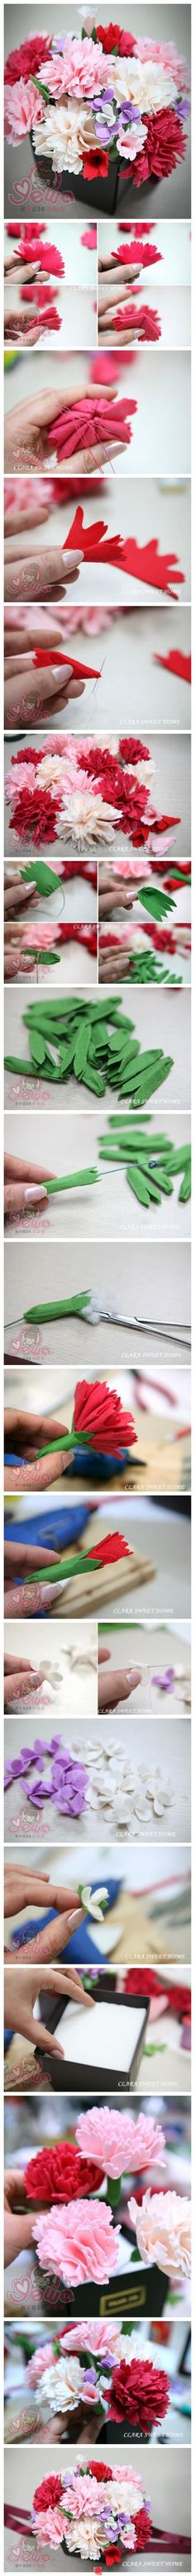 Felt Flowers ~ free felt tutorials. . . I'd like to try Foamie sheets and make these flowers.